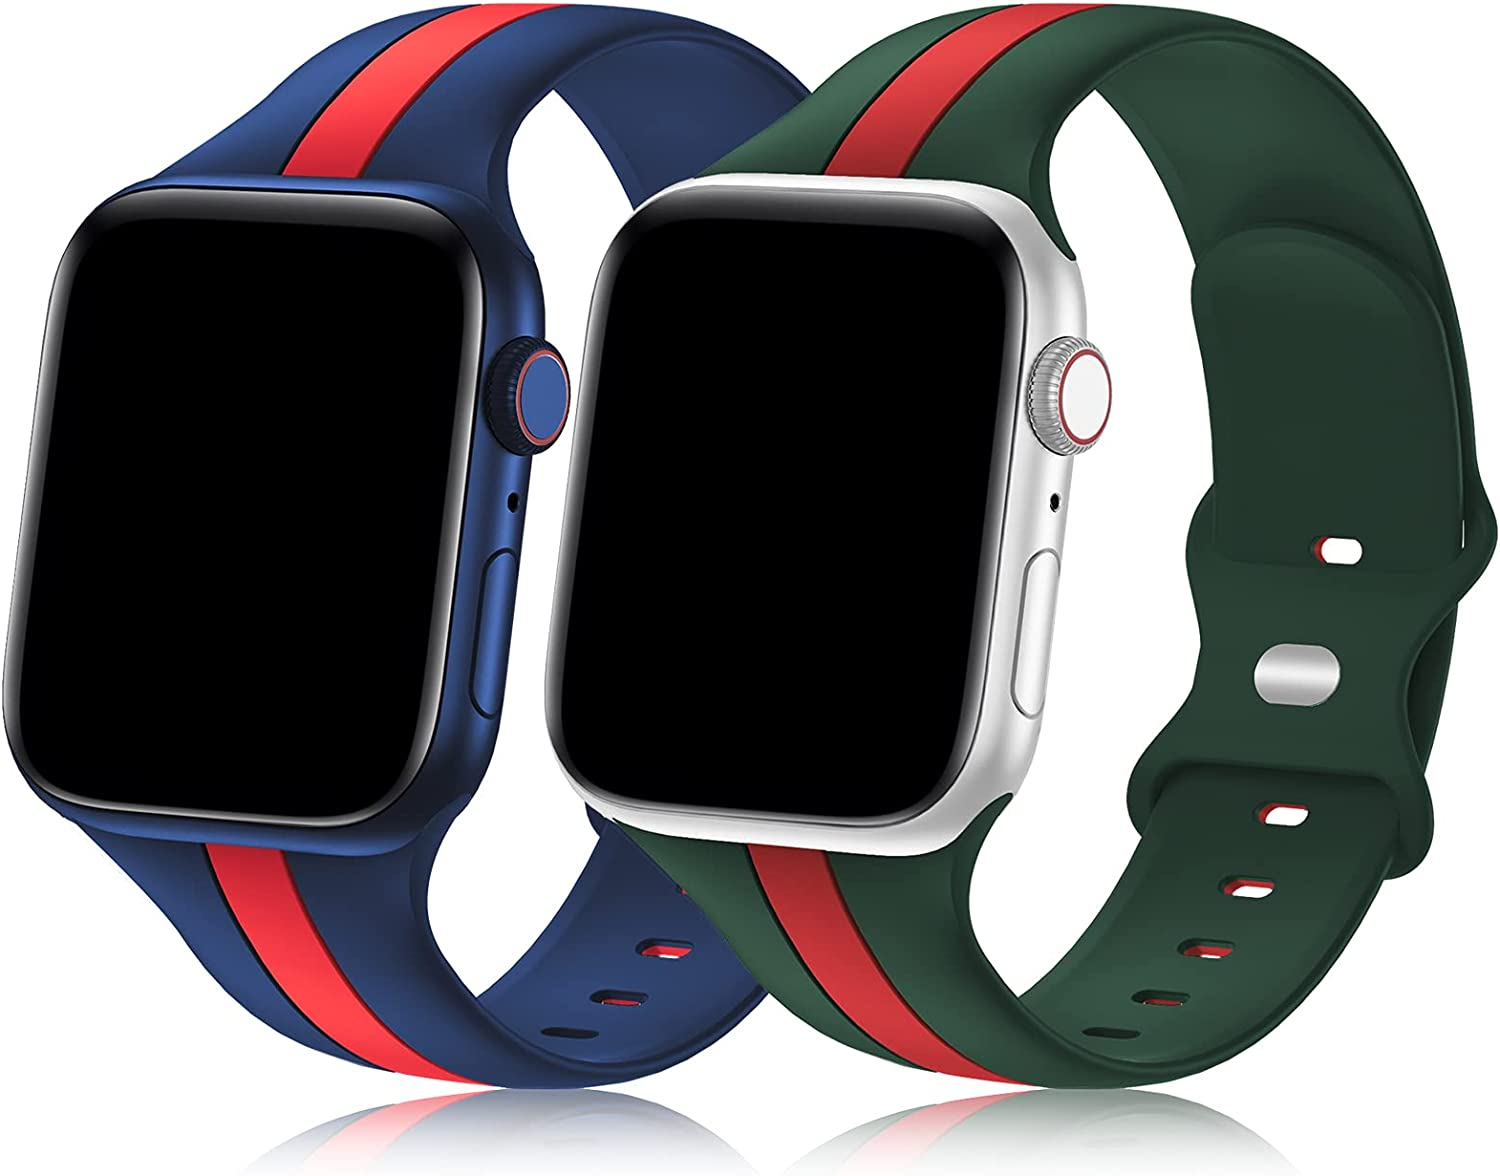 Bagoplus 2 Pack Designer Sport Band Compatible with Apple Watch Band 38mm 40mm 41mm 42mm 44mm 45mm iWatch Bands for Women Men, Soft Silicone Sport Strap for Apple Watch Series 7 6 5 4 3 SE 2 1